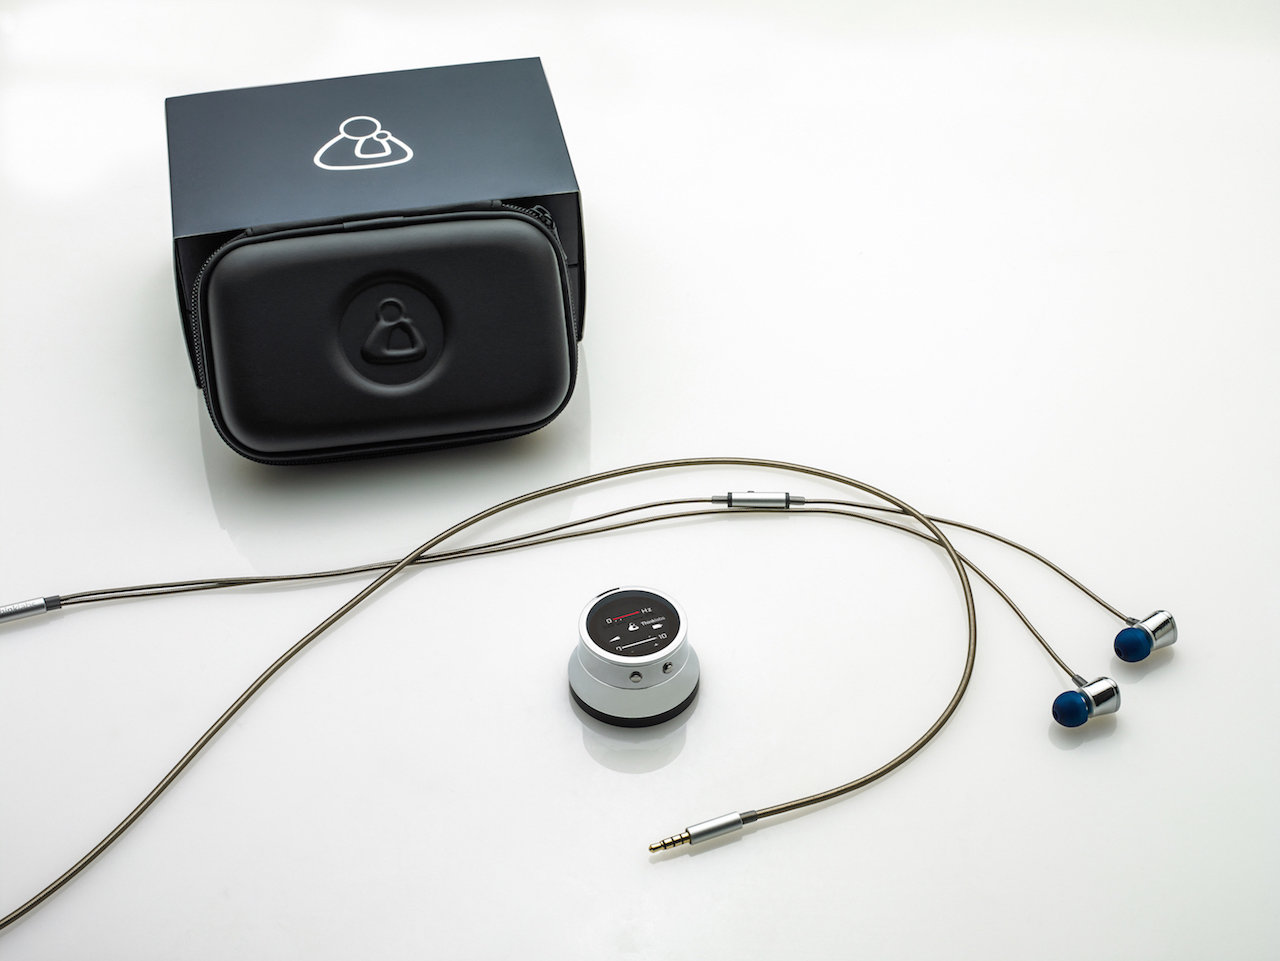 The ONE Digital Amplified Stethoscope kit by Think Labs